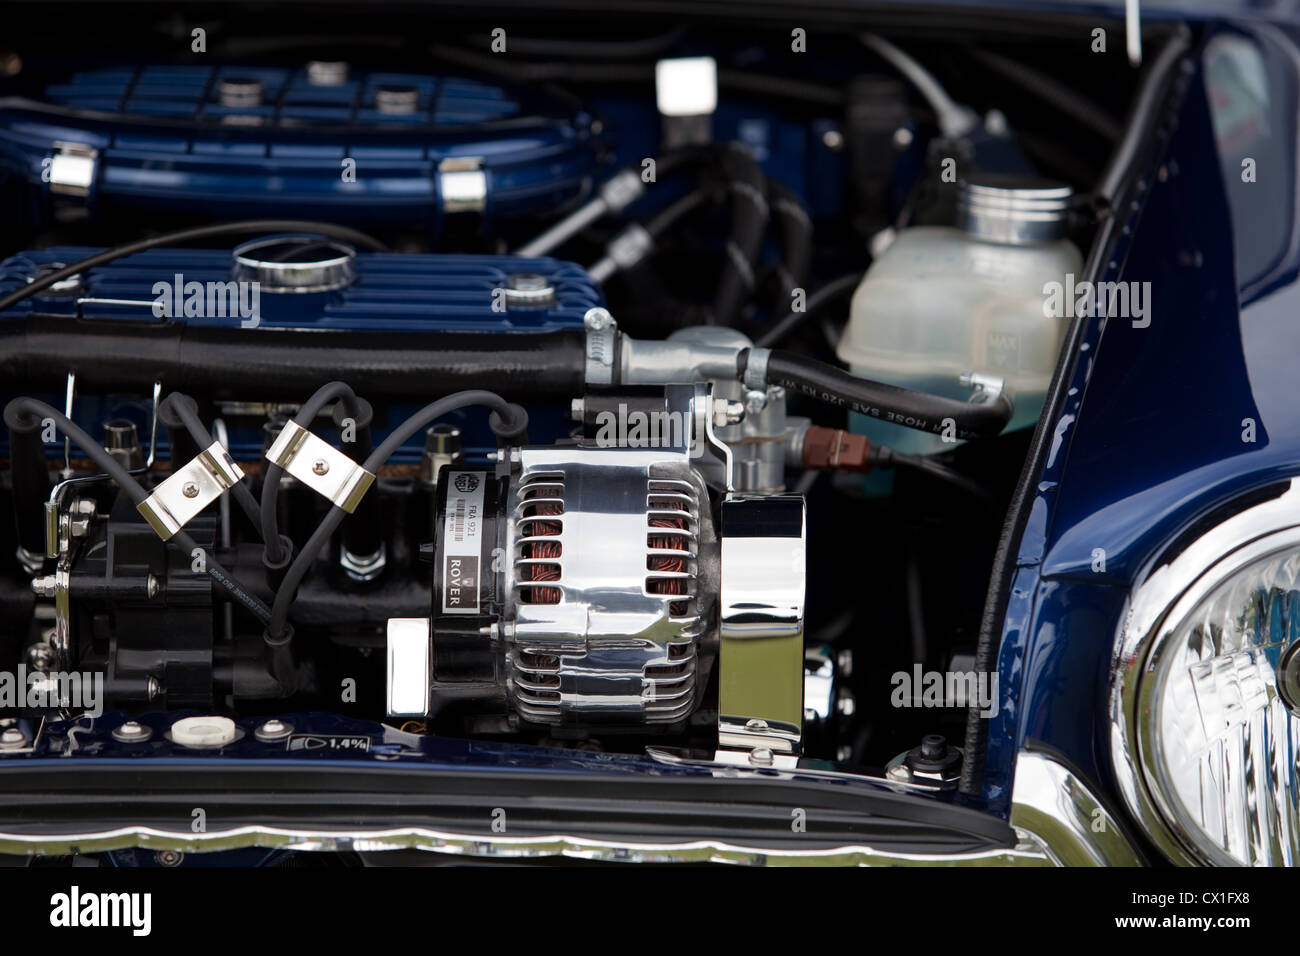 Polished Engine Stockfotos & Polished Engine Bilder - Alamy